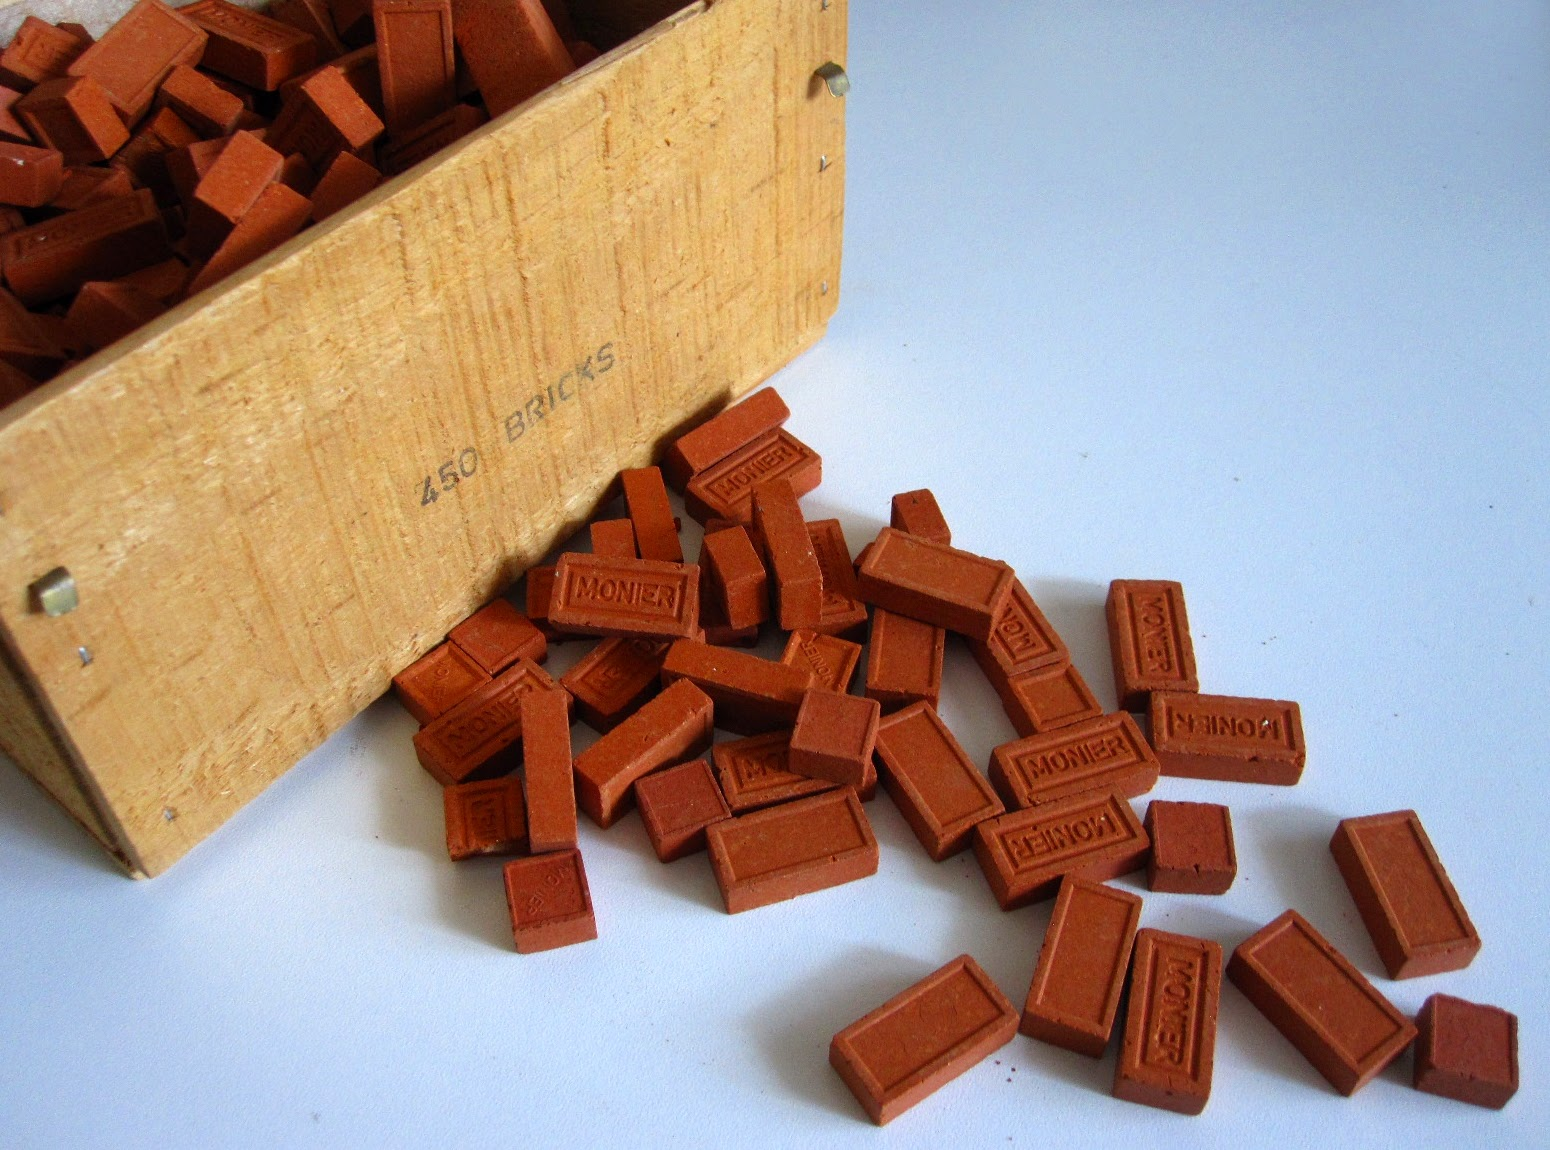 Wooden box of miniature bricks.